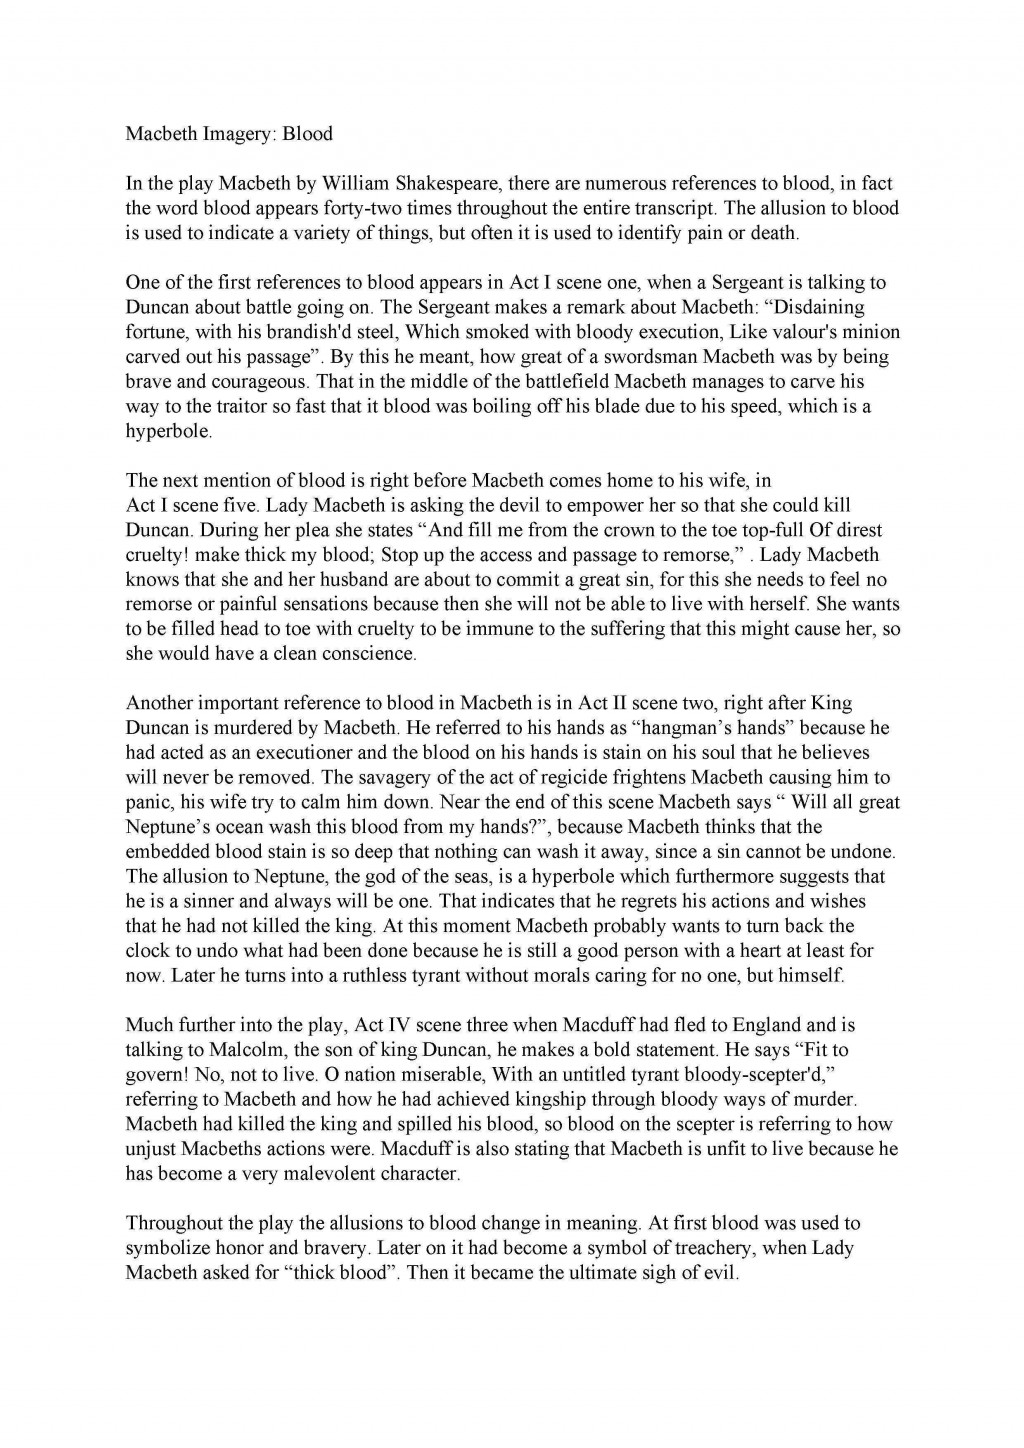 014 Help Me Write Reflective Essay On Shakespeare Culture Shock Fearsome Prompt Story Titles Large